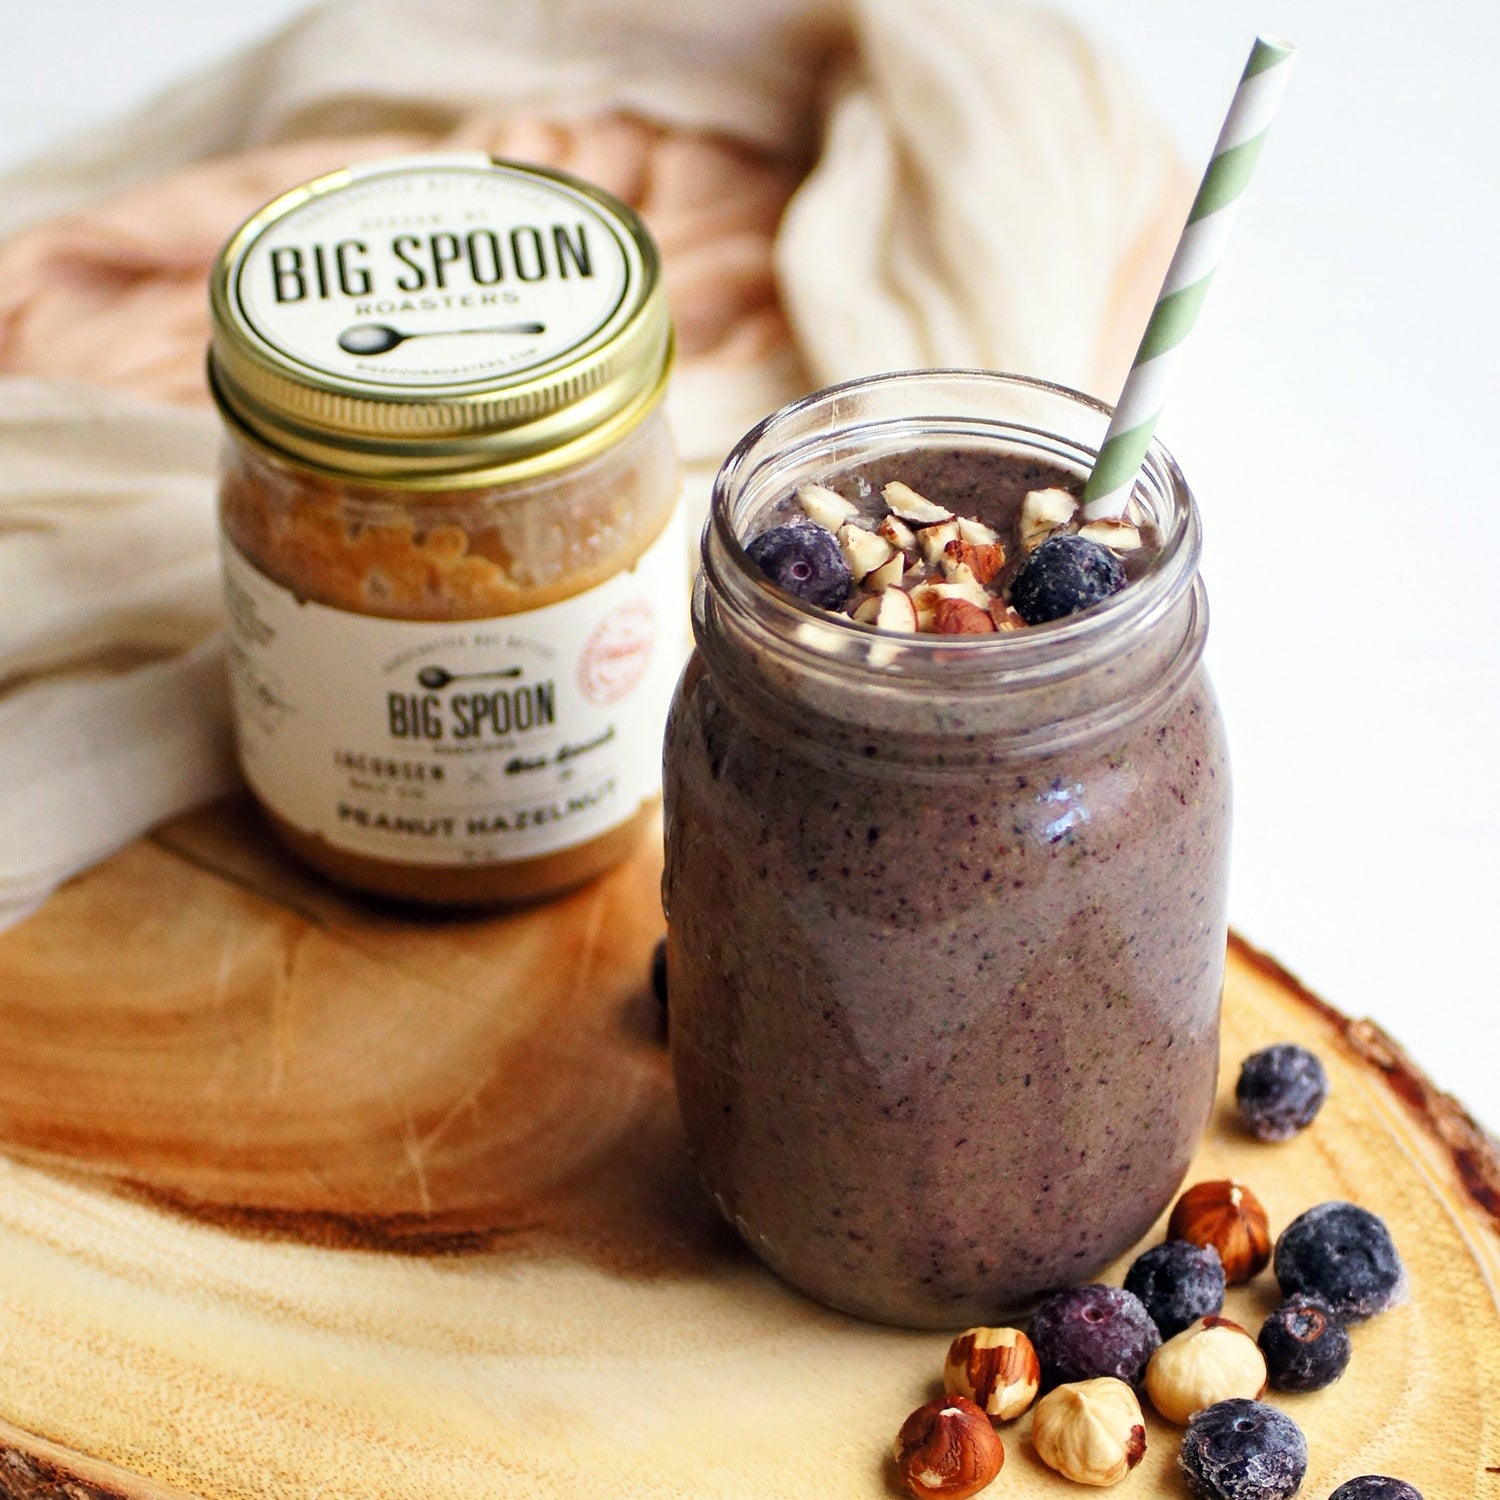 Big Spoon Roasters Peanut Hazelnut Butter next to a jar with a blueberry breakfast smoothie.